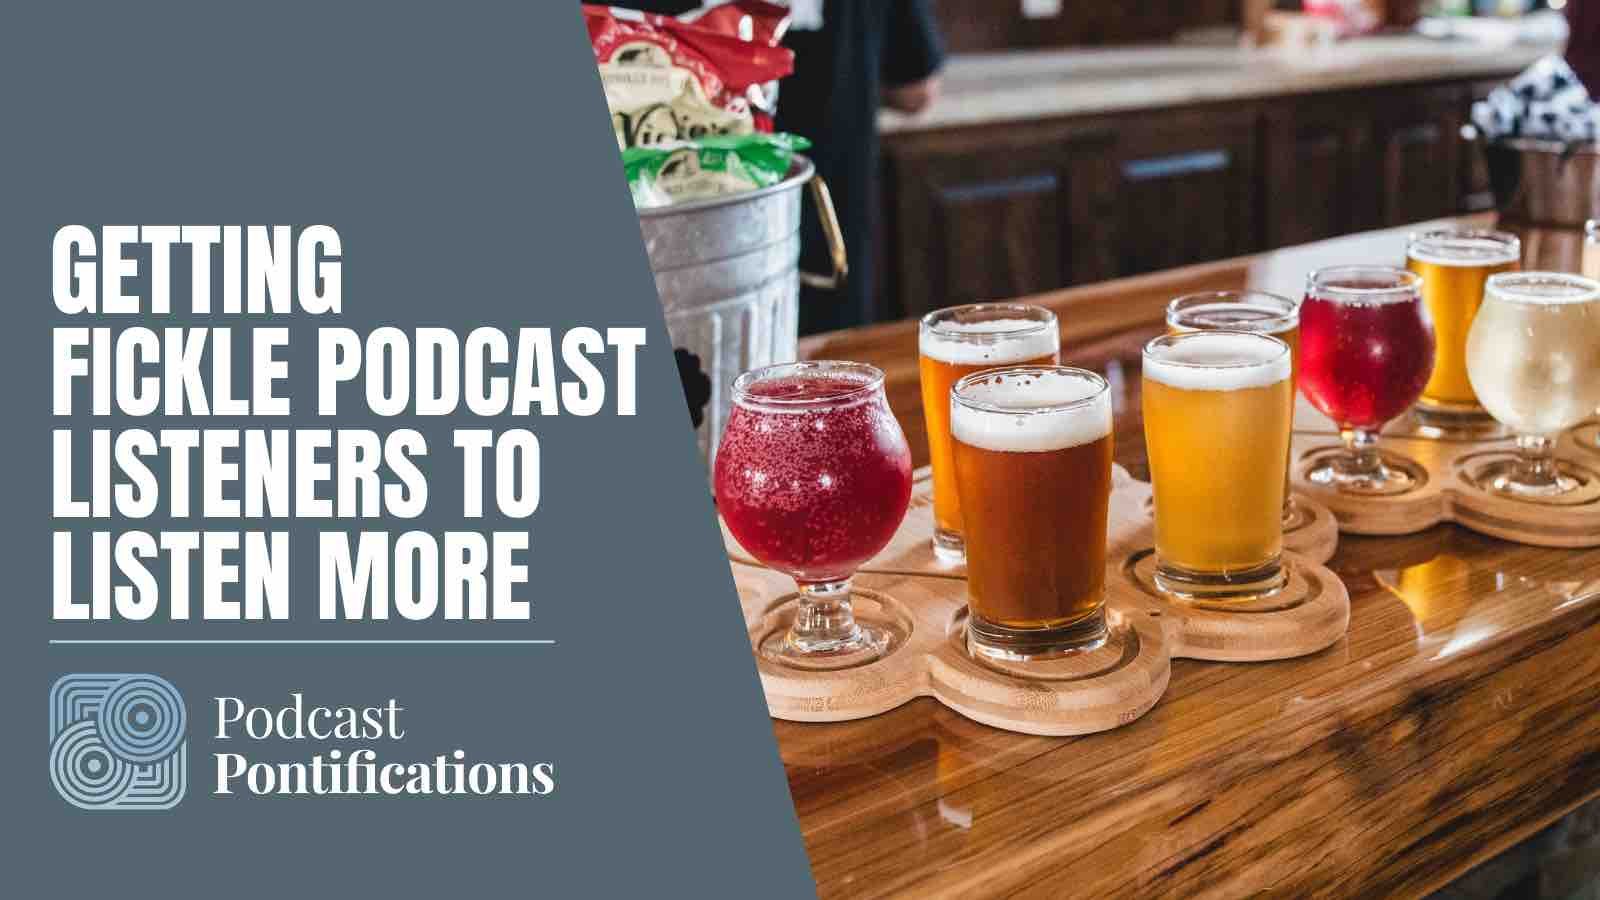 Getting Fickle Podcast Listeners To Listen More